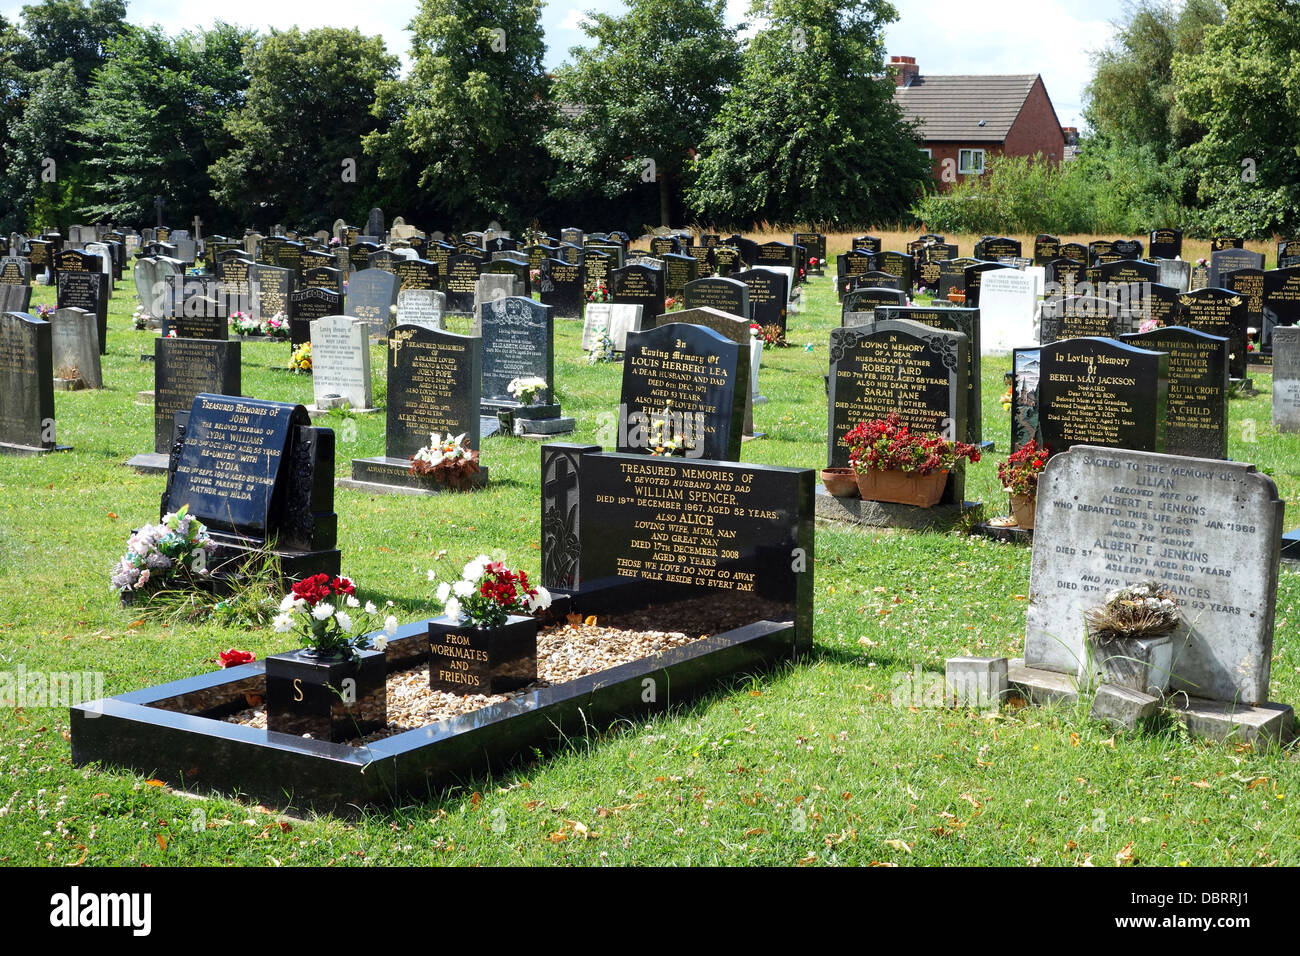 A traditional english cemetery - Stock Image